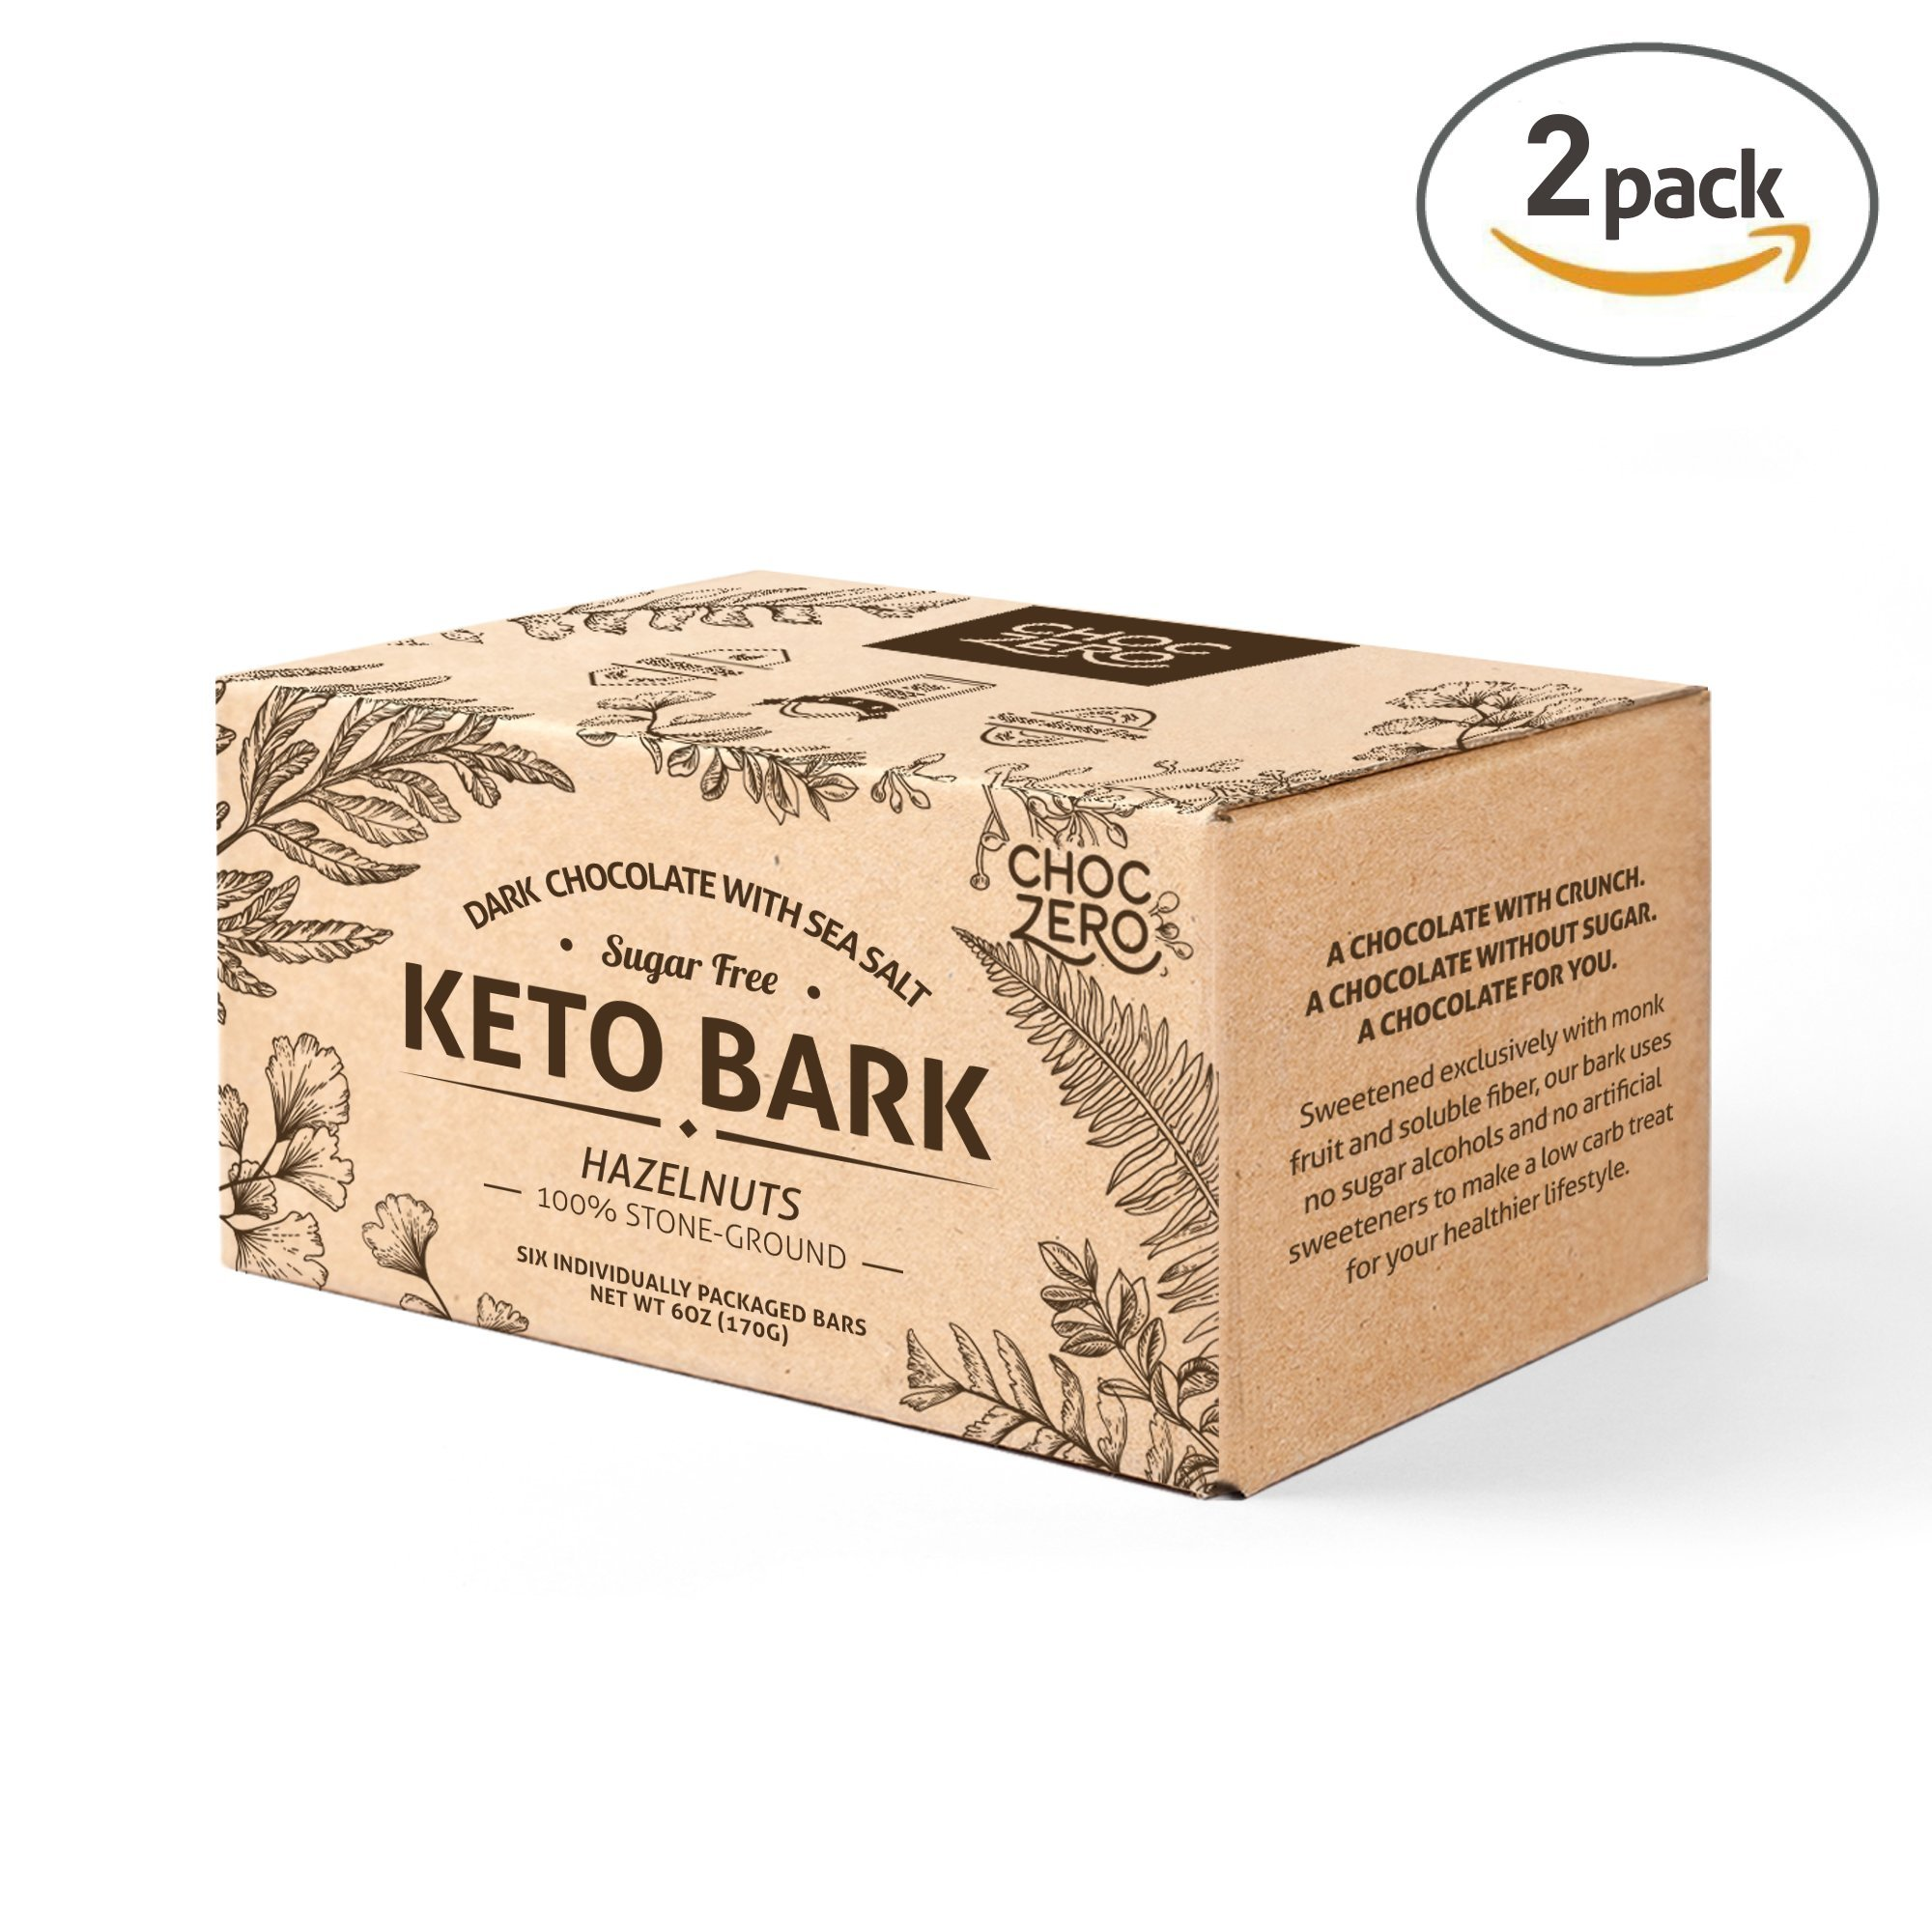 ChocZero's Keto Bark, Dark Chocolate Hazelnuts with Sea Salt. 100% Stone-Ground, Sugar Free, Low Carb. No Sugar Alcohols, No Artificial Sweeteners, All Natural, Non-GMO (2 boxes, 6 bars/each)